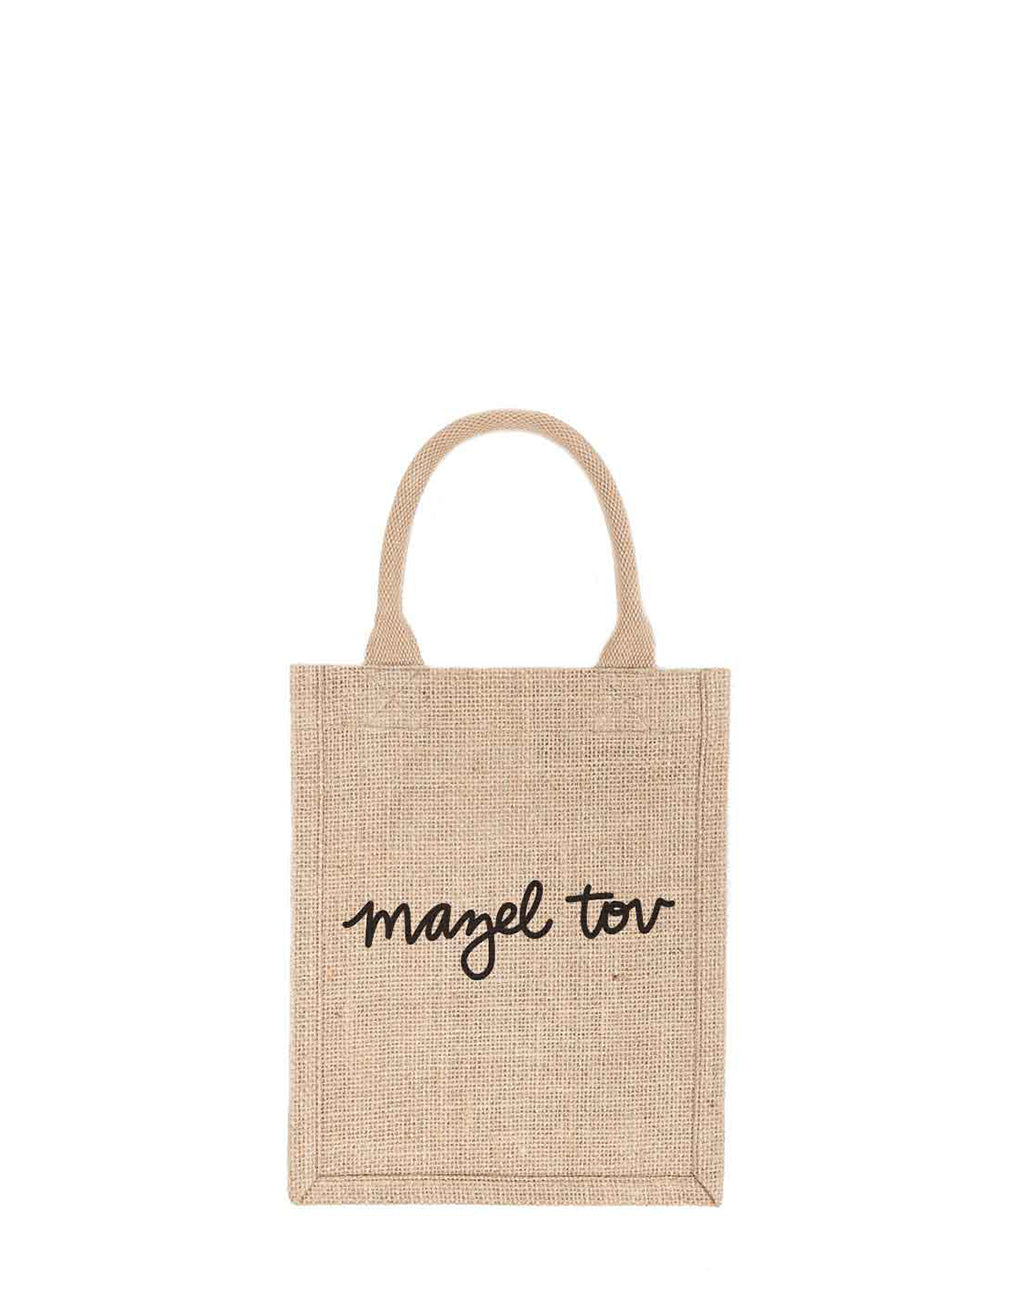 Small Mazel Tov Reusable Gift Tote In Black Font | The Little Market